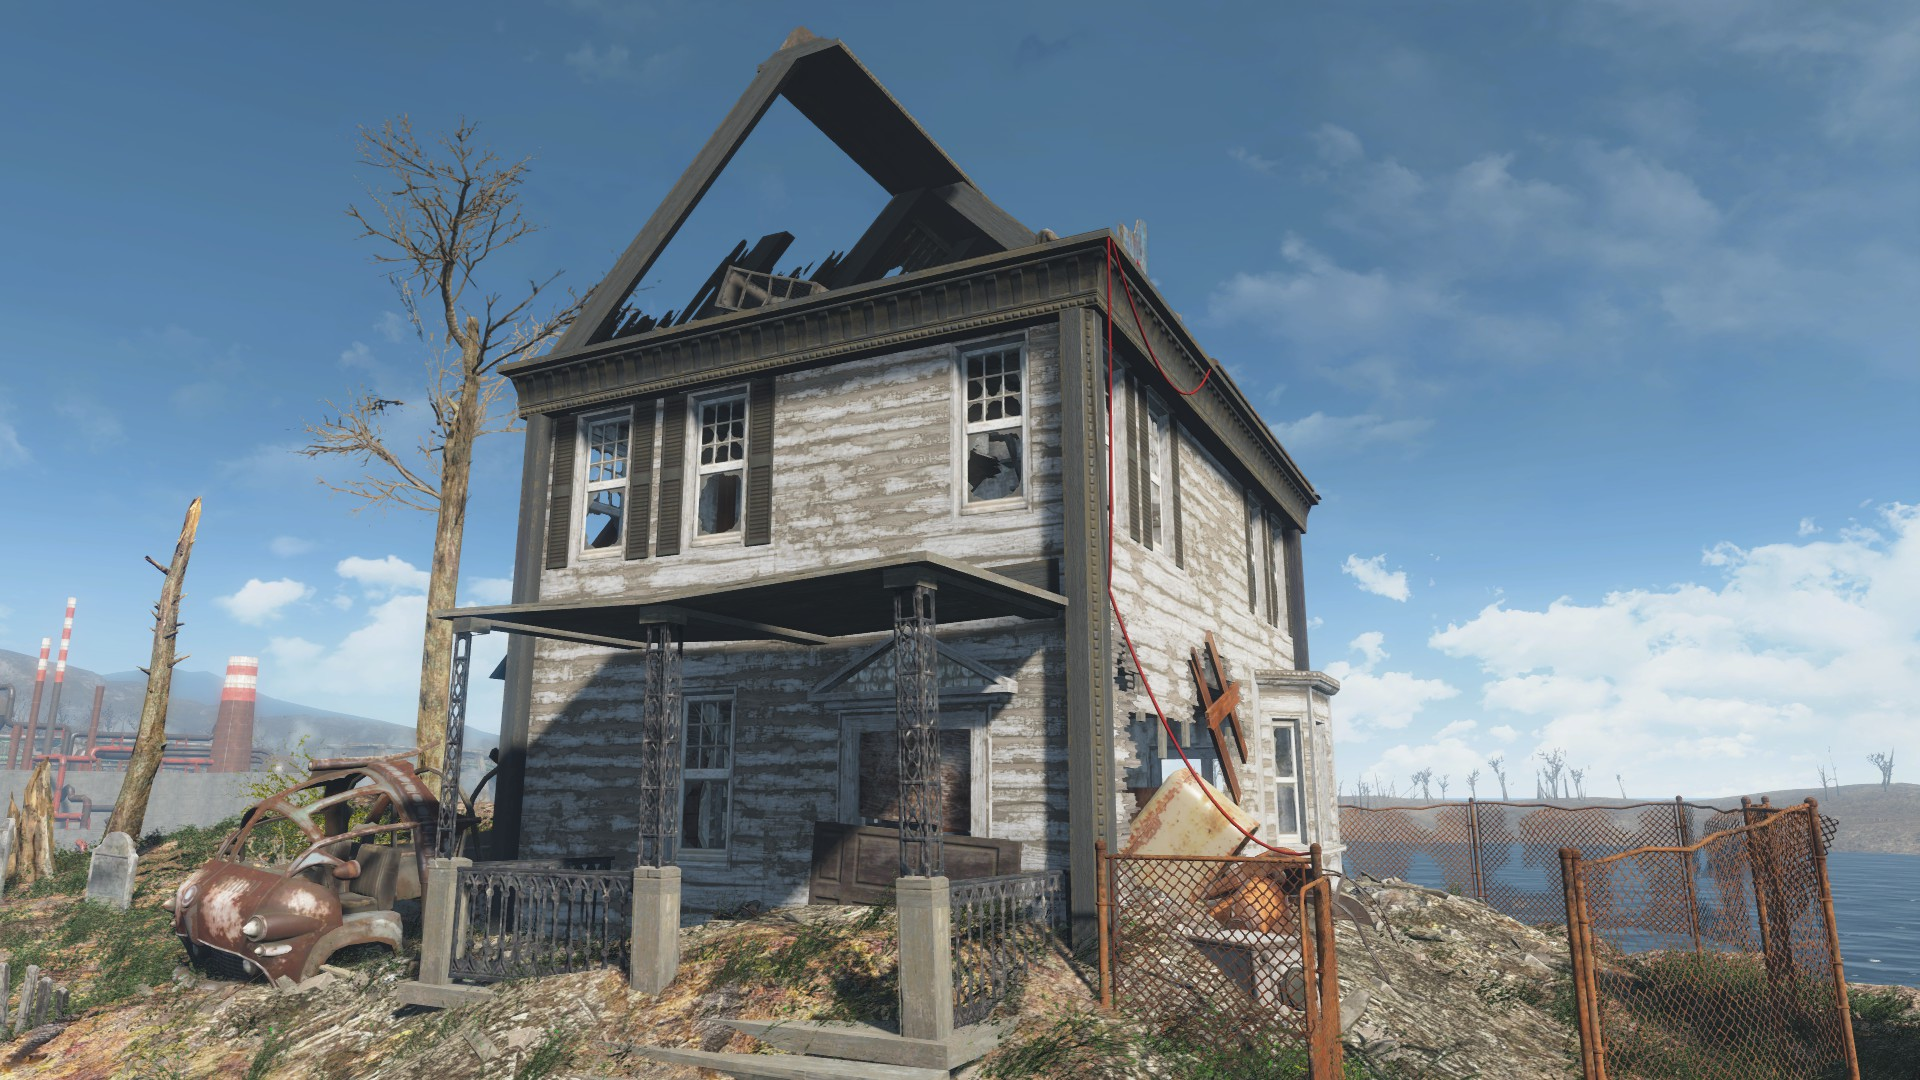 Rook Family House Fallout Wiki Fandom Powered By Wikia Old Square D Fuse Box